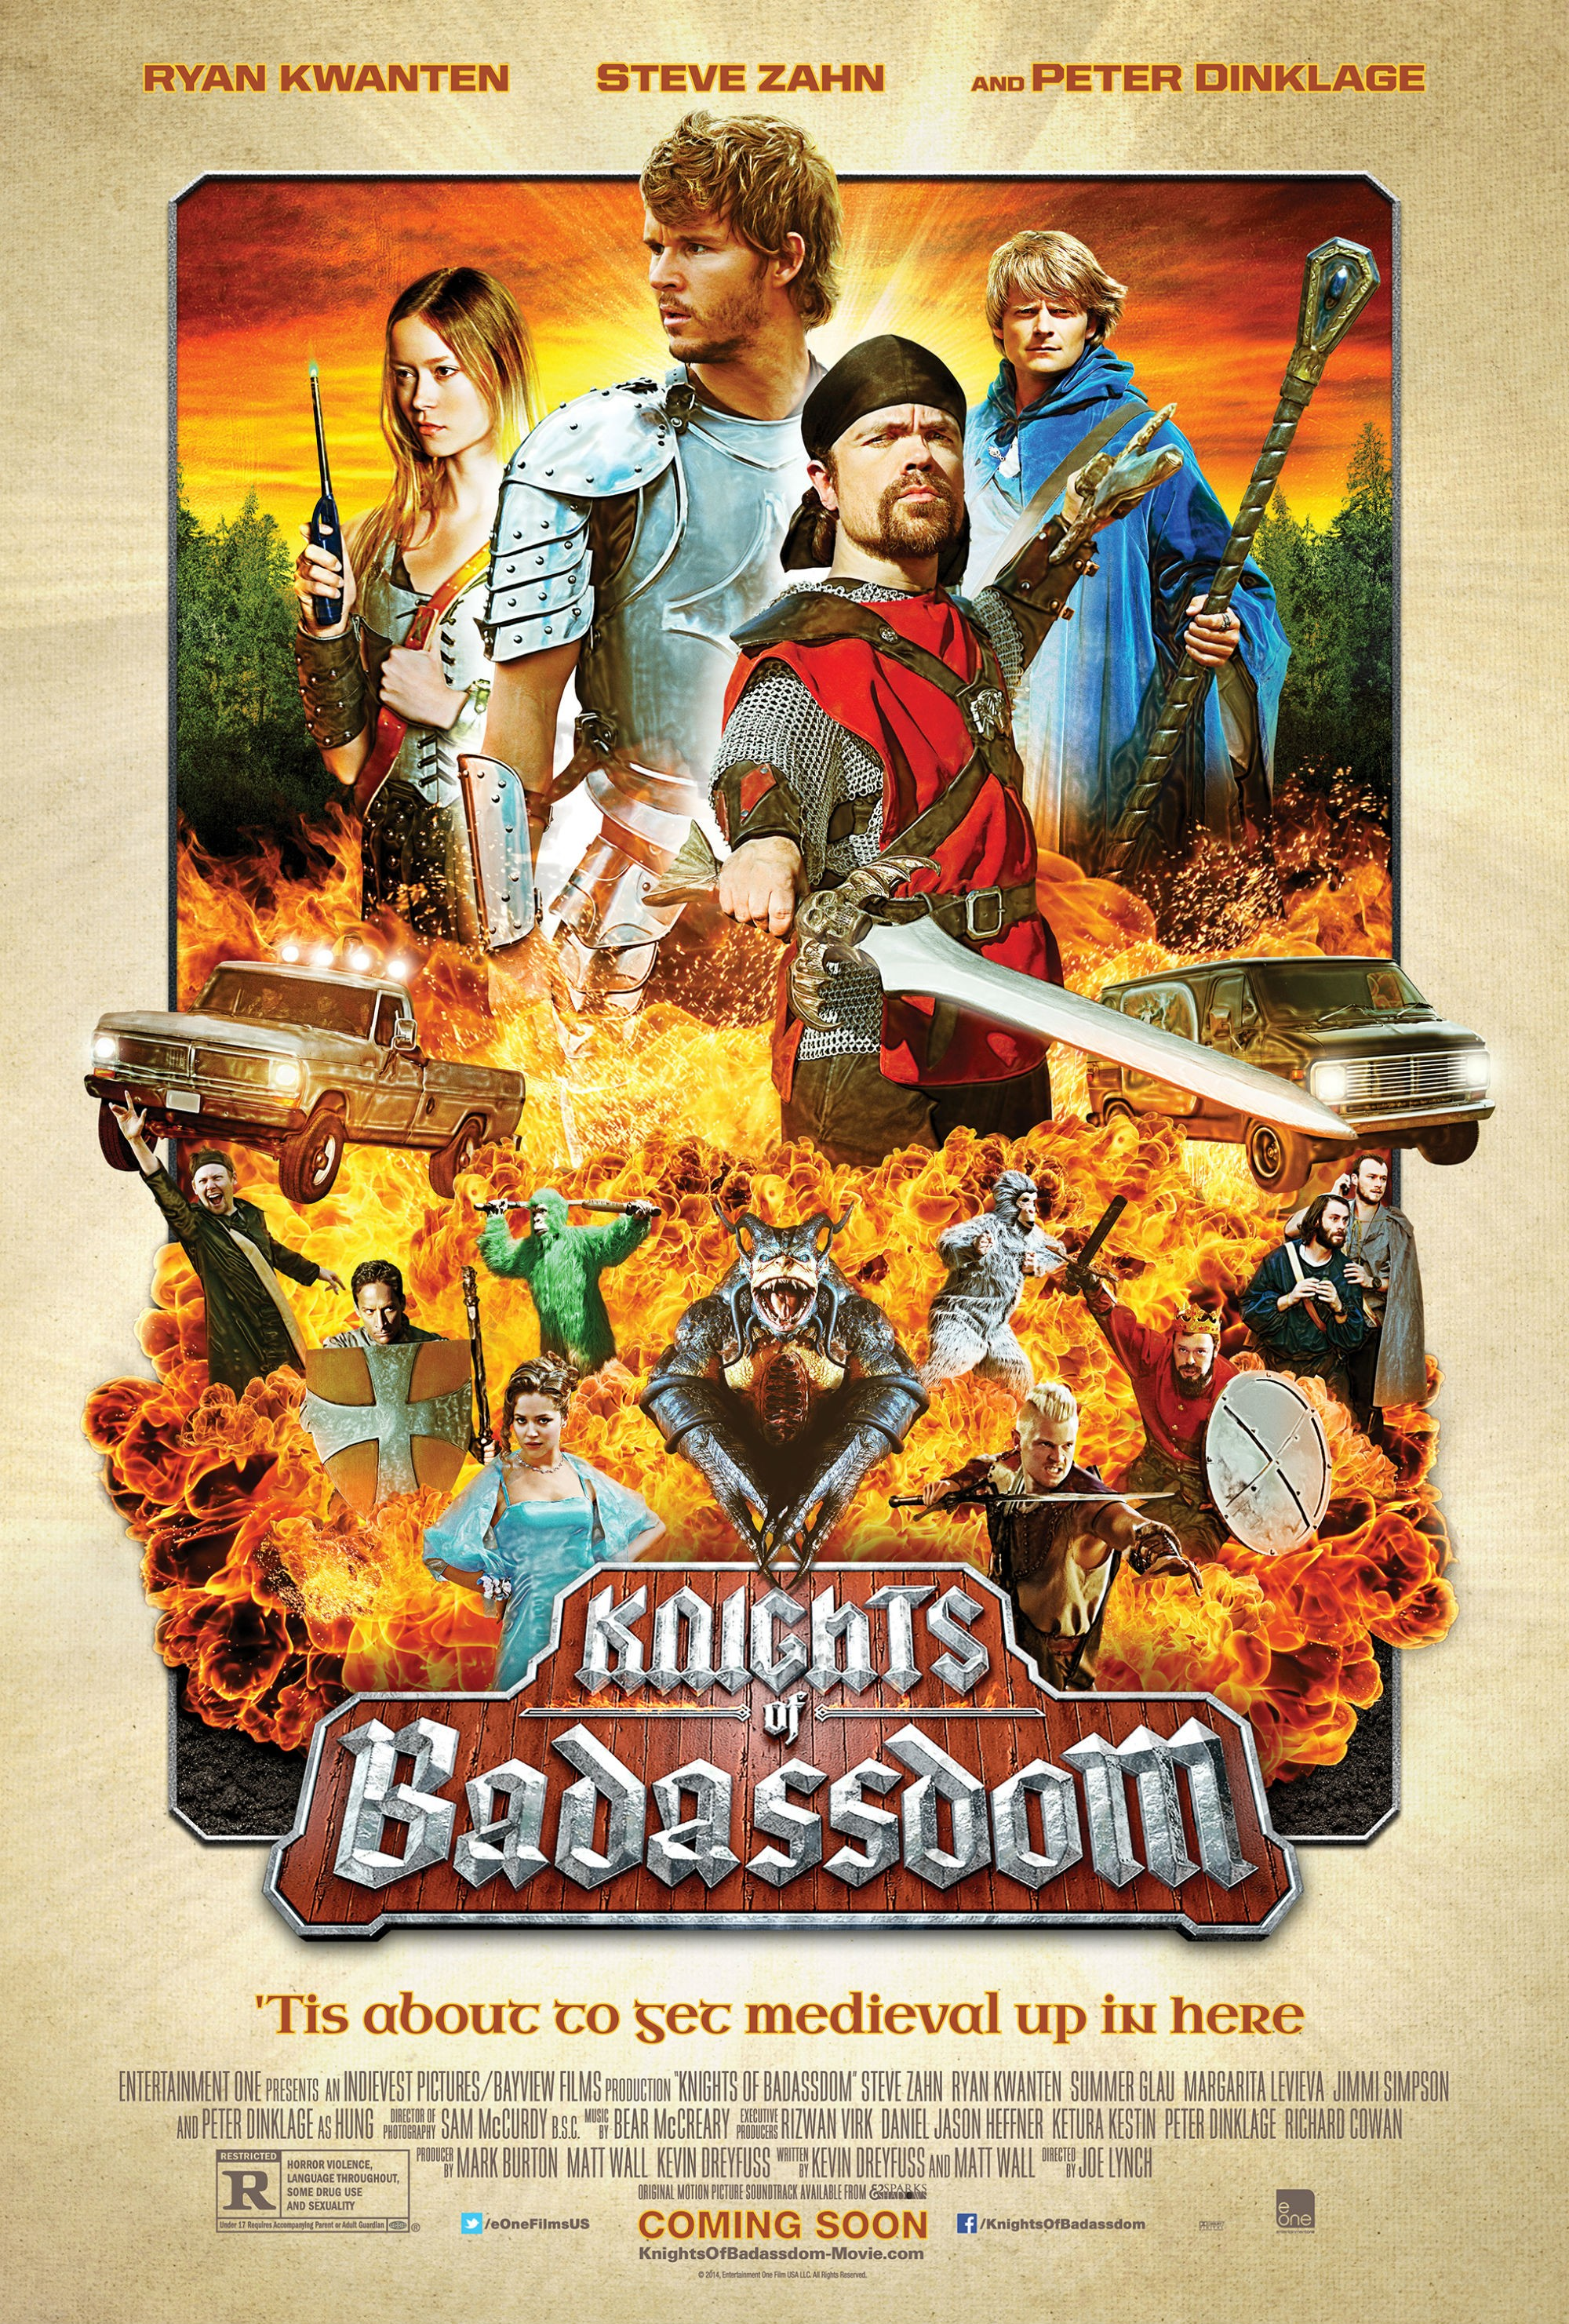 KNIGHTS OF BADASSDOM-Official Poster Banner PROMO POSTER XXLG-13JANEIRO2014